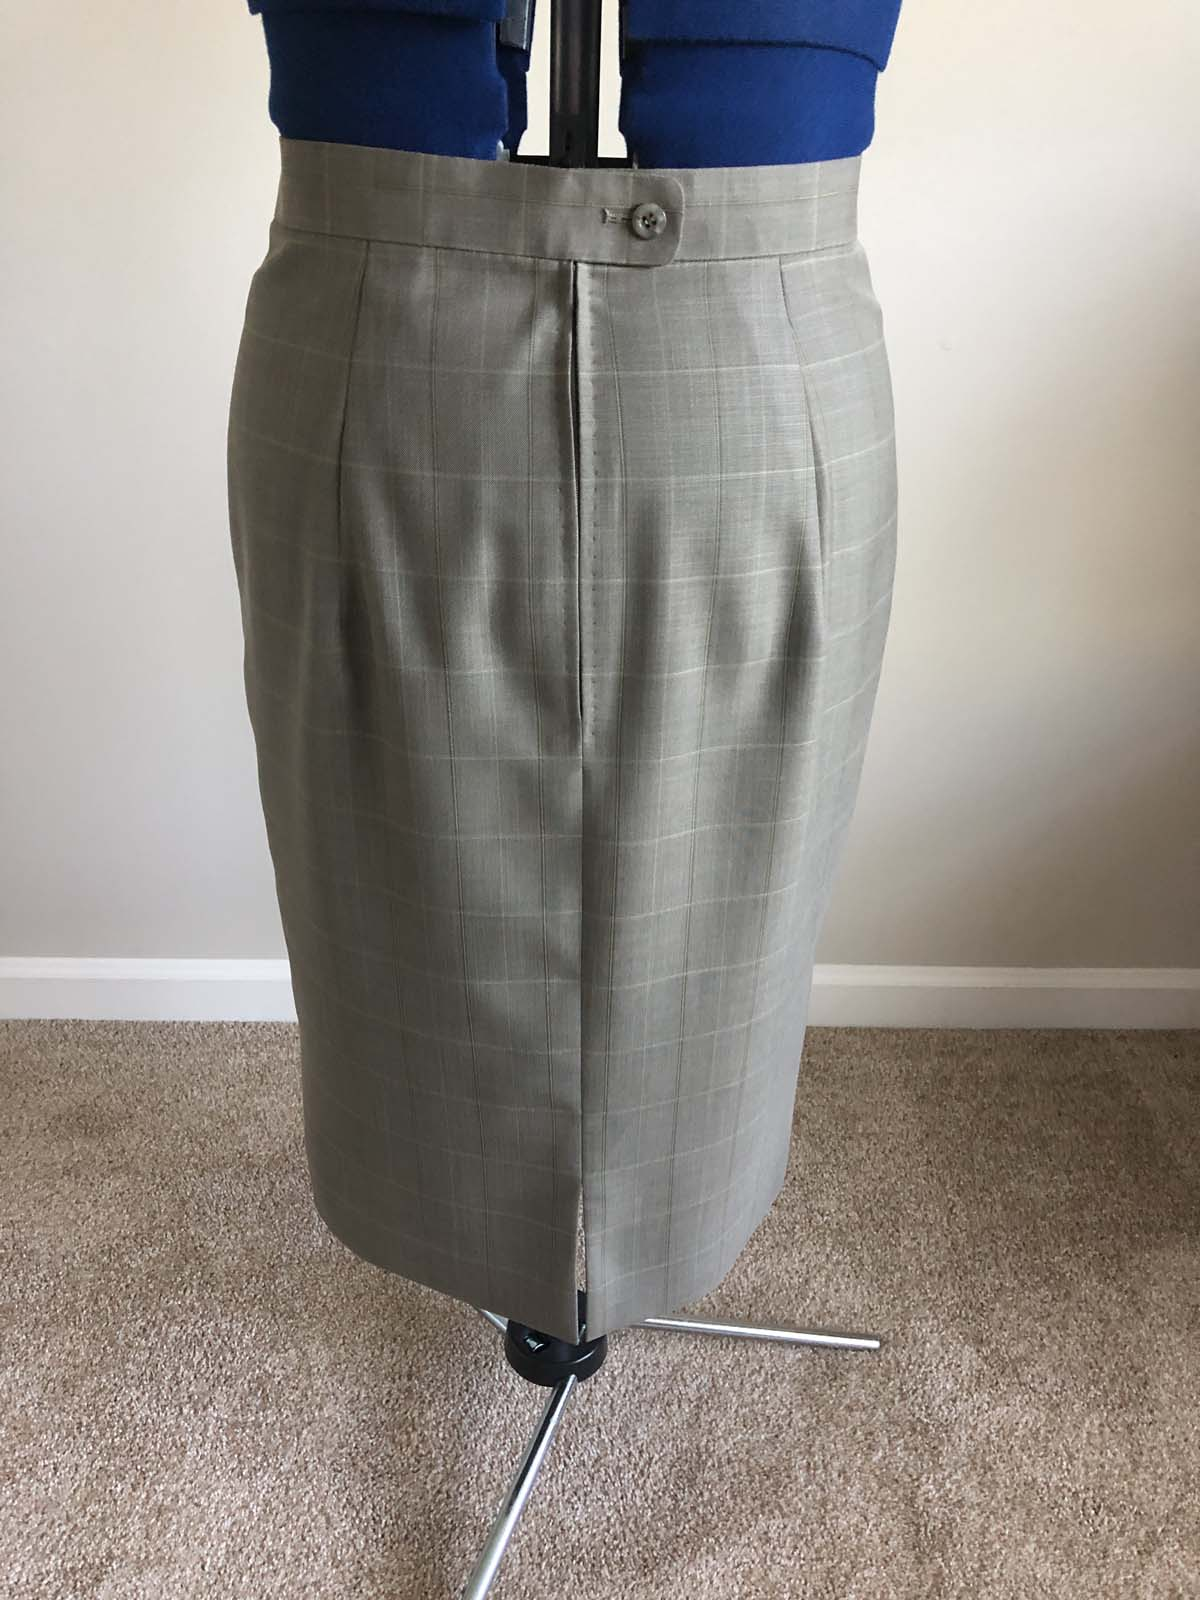 Finished skirt back, on dress form; skirt created from men's suit pants